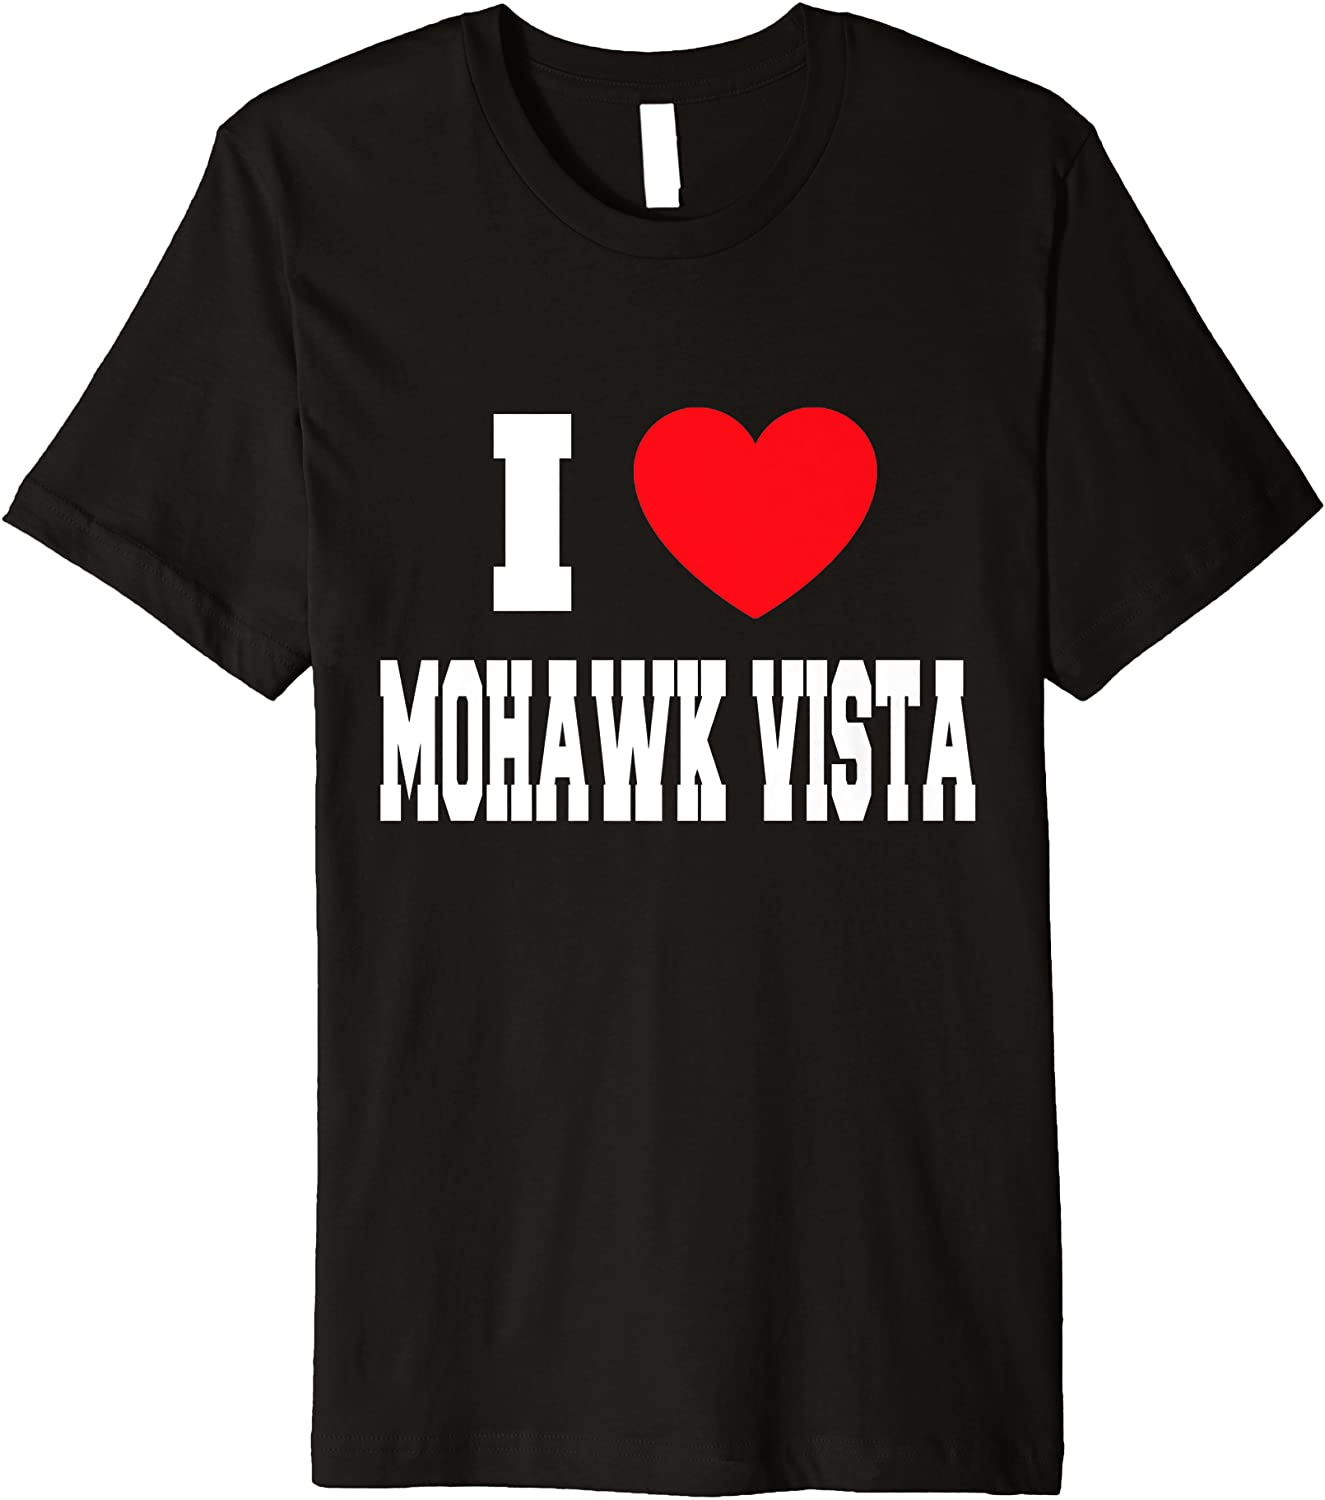 Sale price I Love Mohawk T-Shirt Premium Vista Spring new work one after another